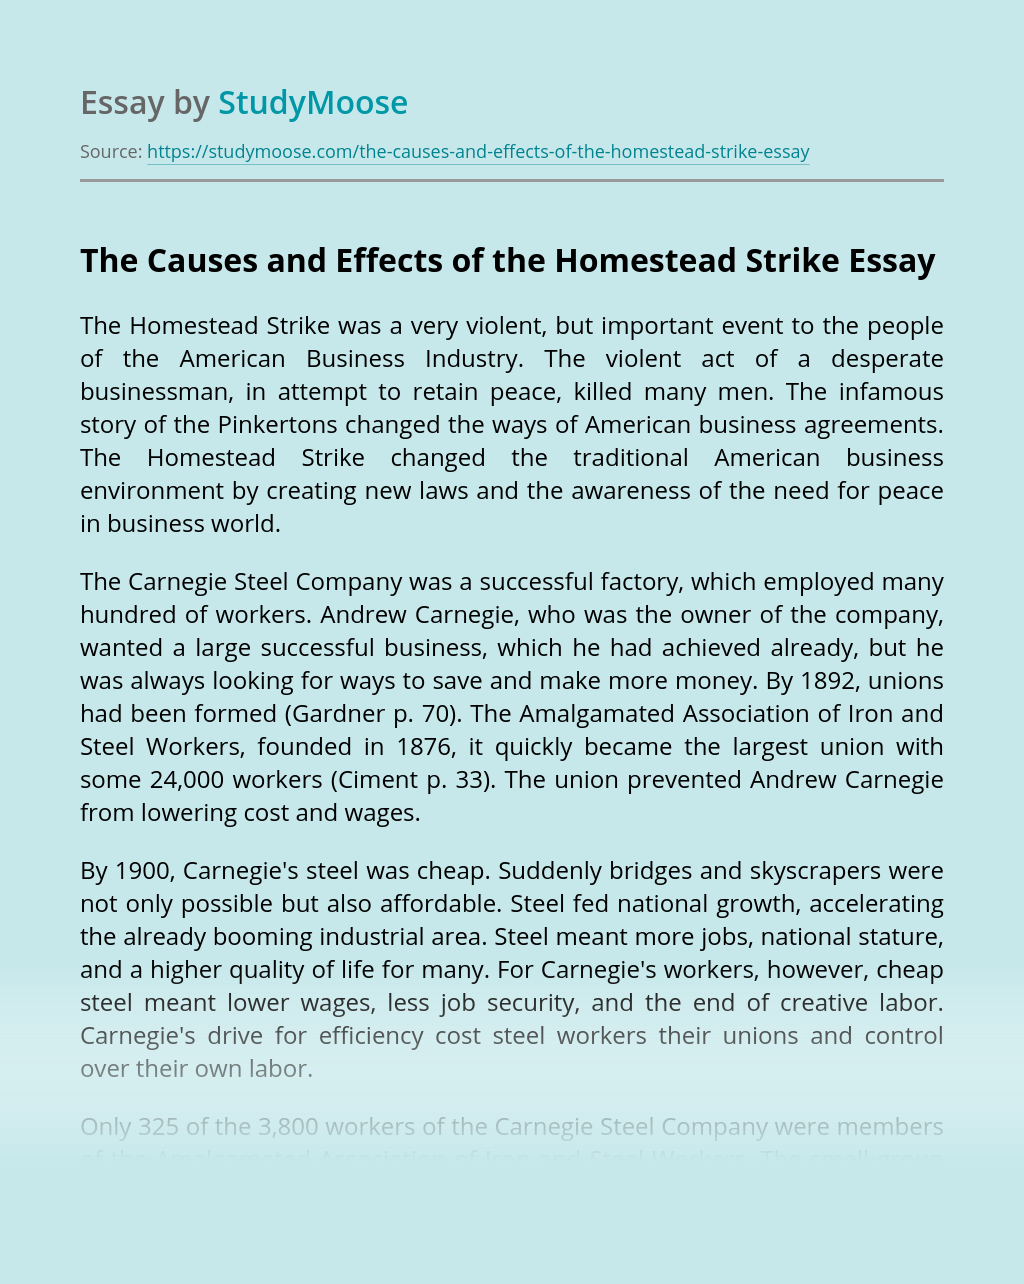 The Causes and Effects of the Homestead Strike